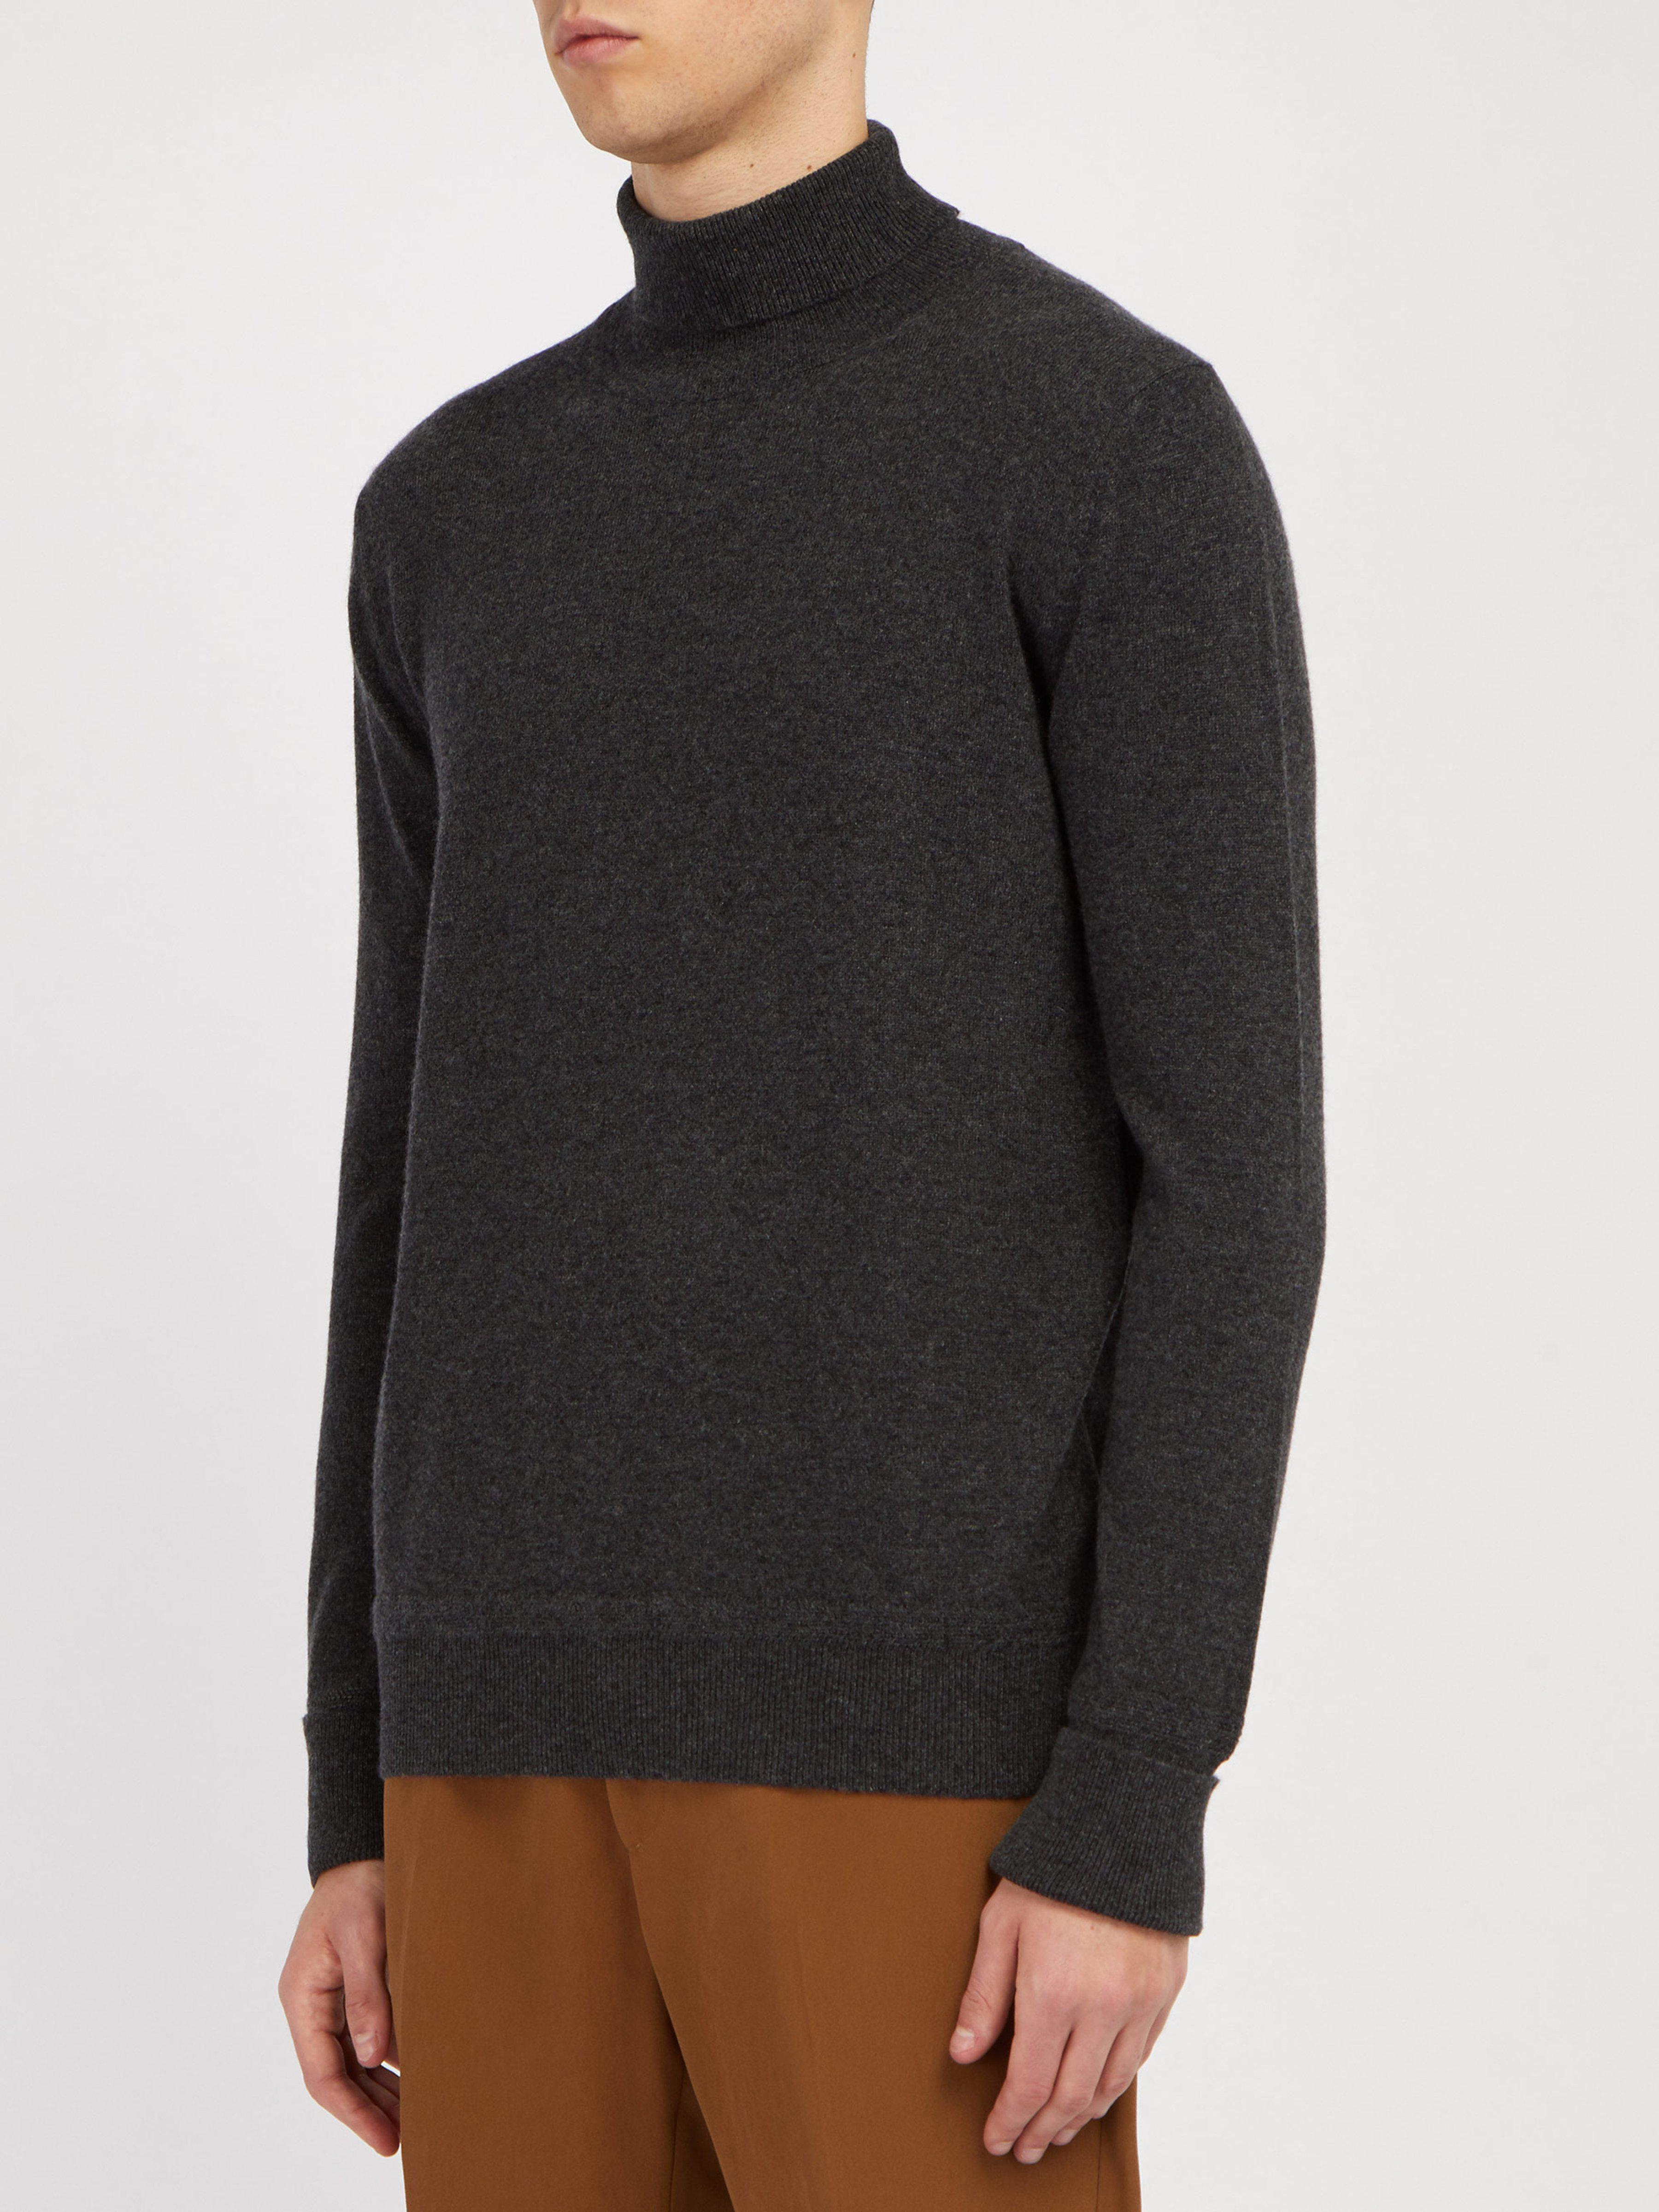 87ce94c854c2ae SALLE PRIVÉE Arvid Cashmere Roll Neck Sweater in Gray for Men - Lyst